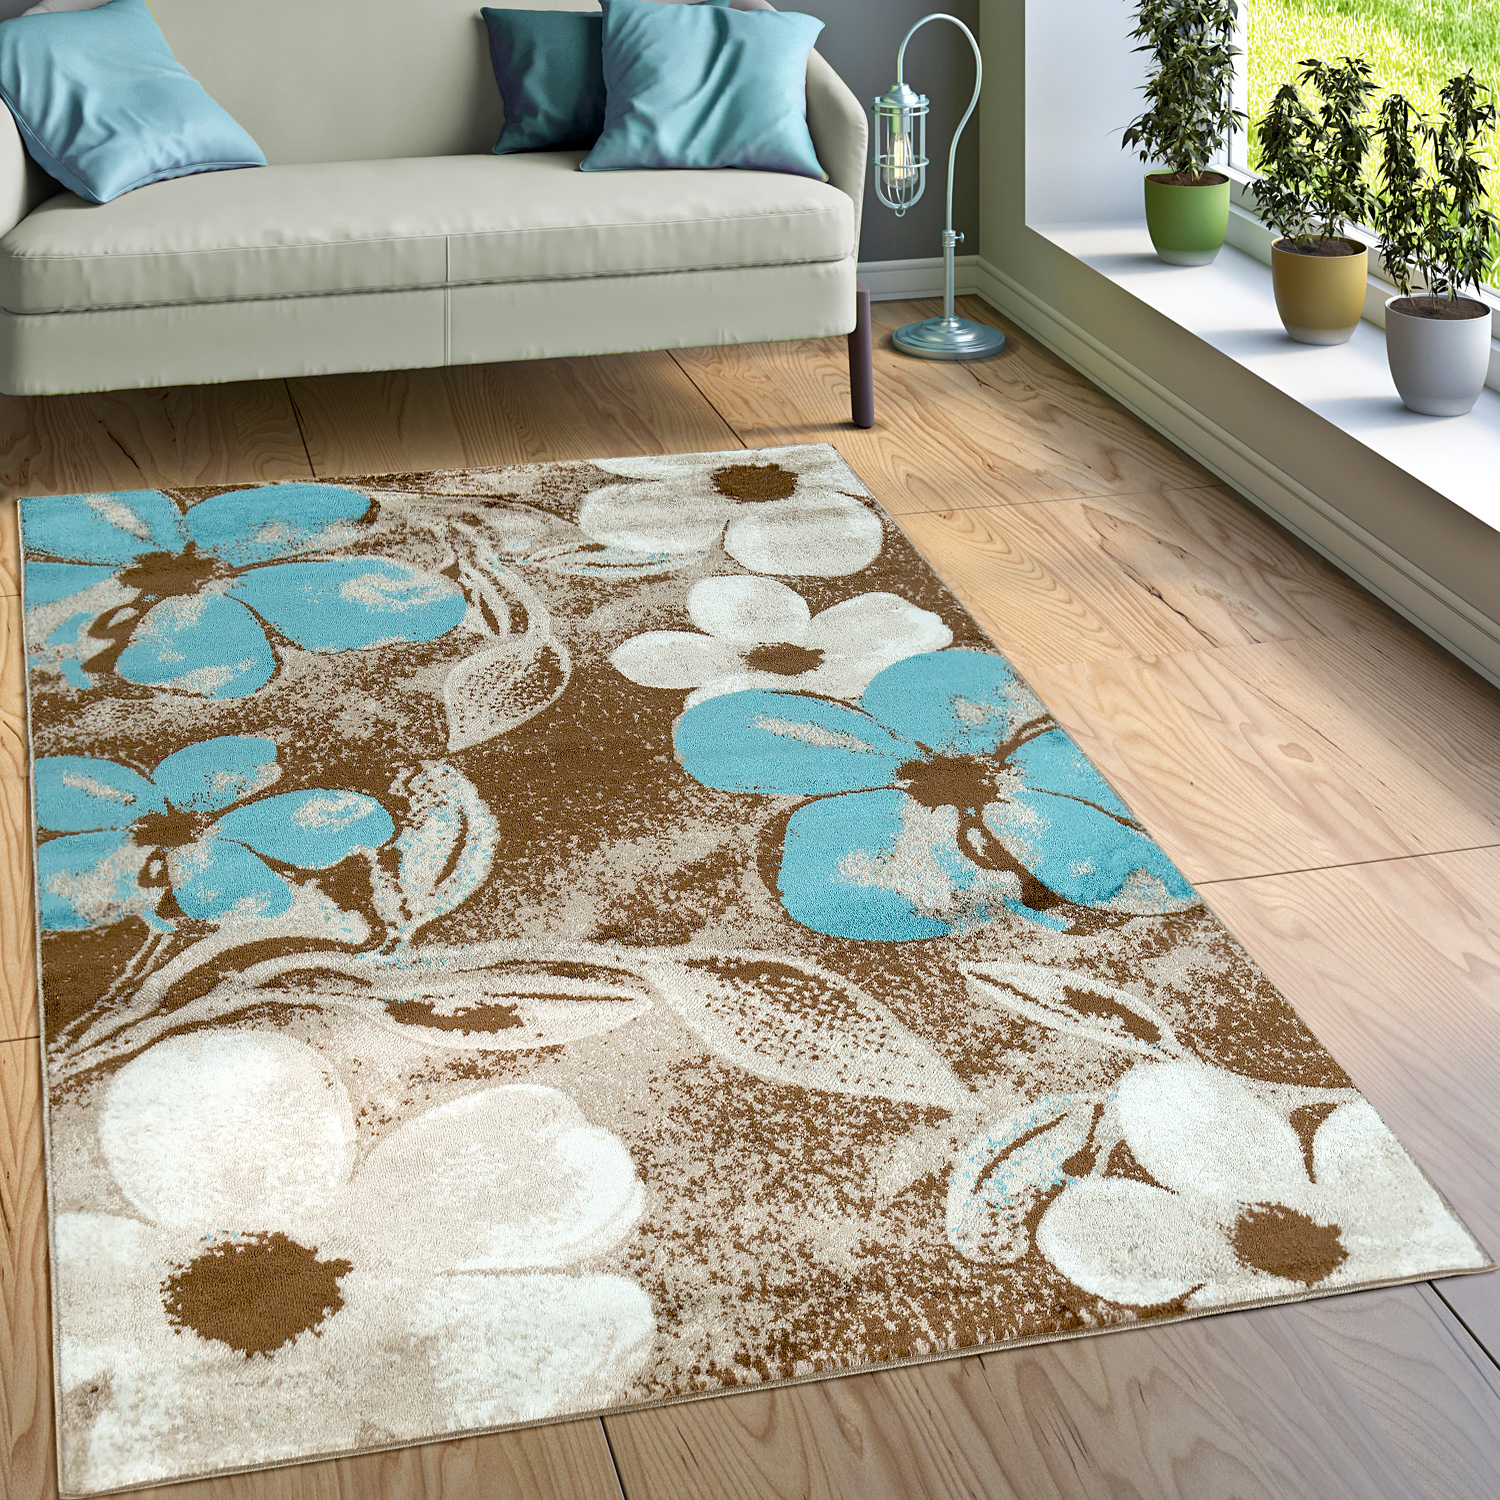 tapis motif fleurs brun bleu tapis tapis poil ras. Black Bedroom Furniture Sets. Home Design Ideas